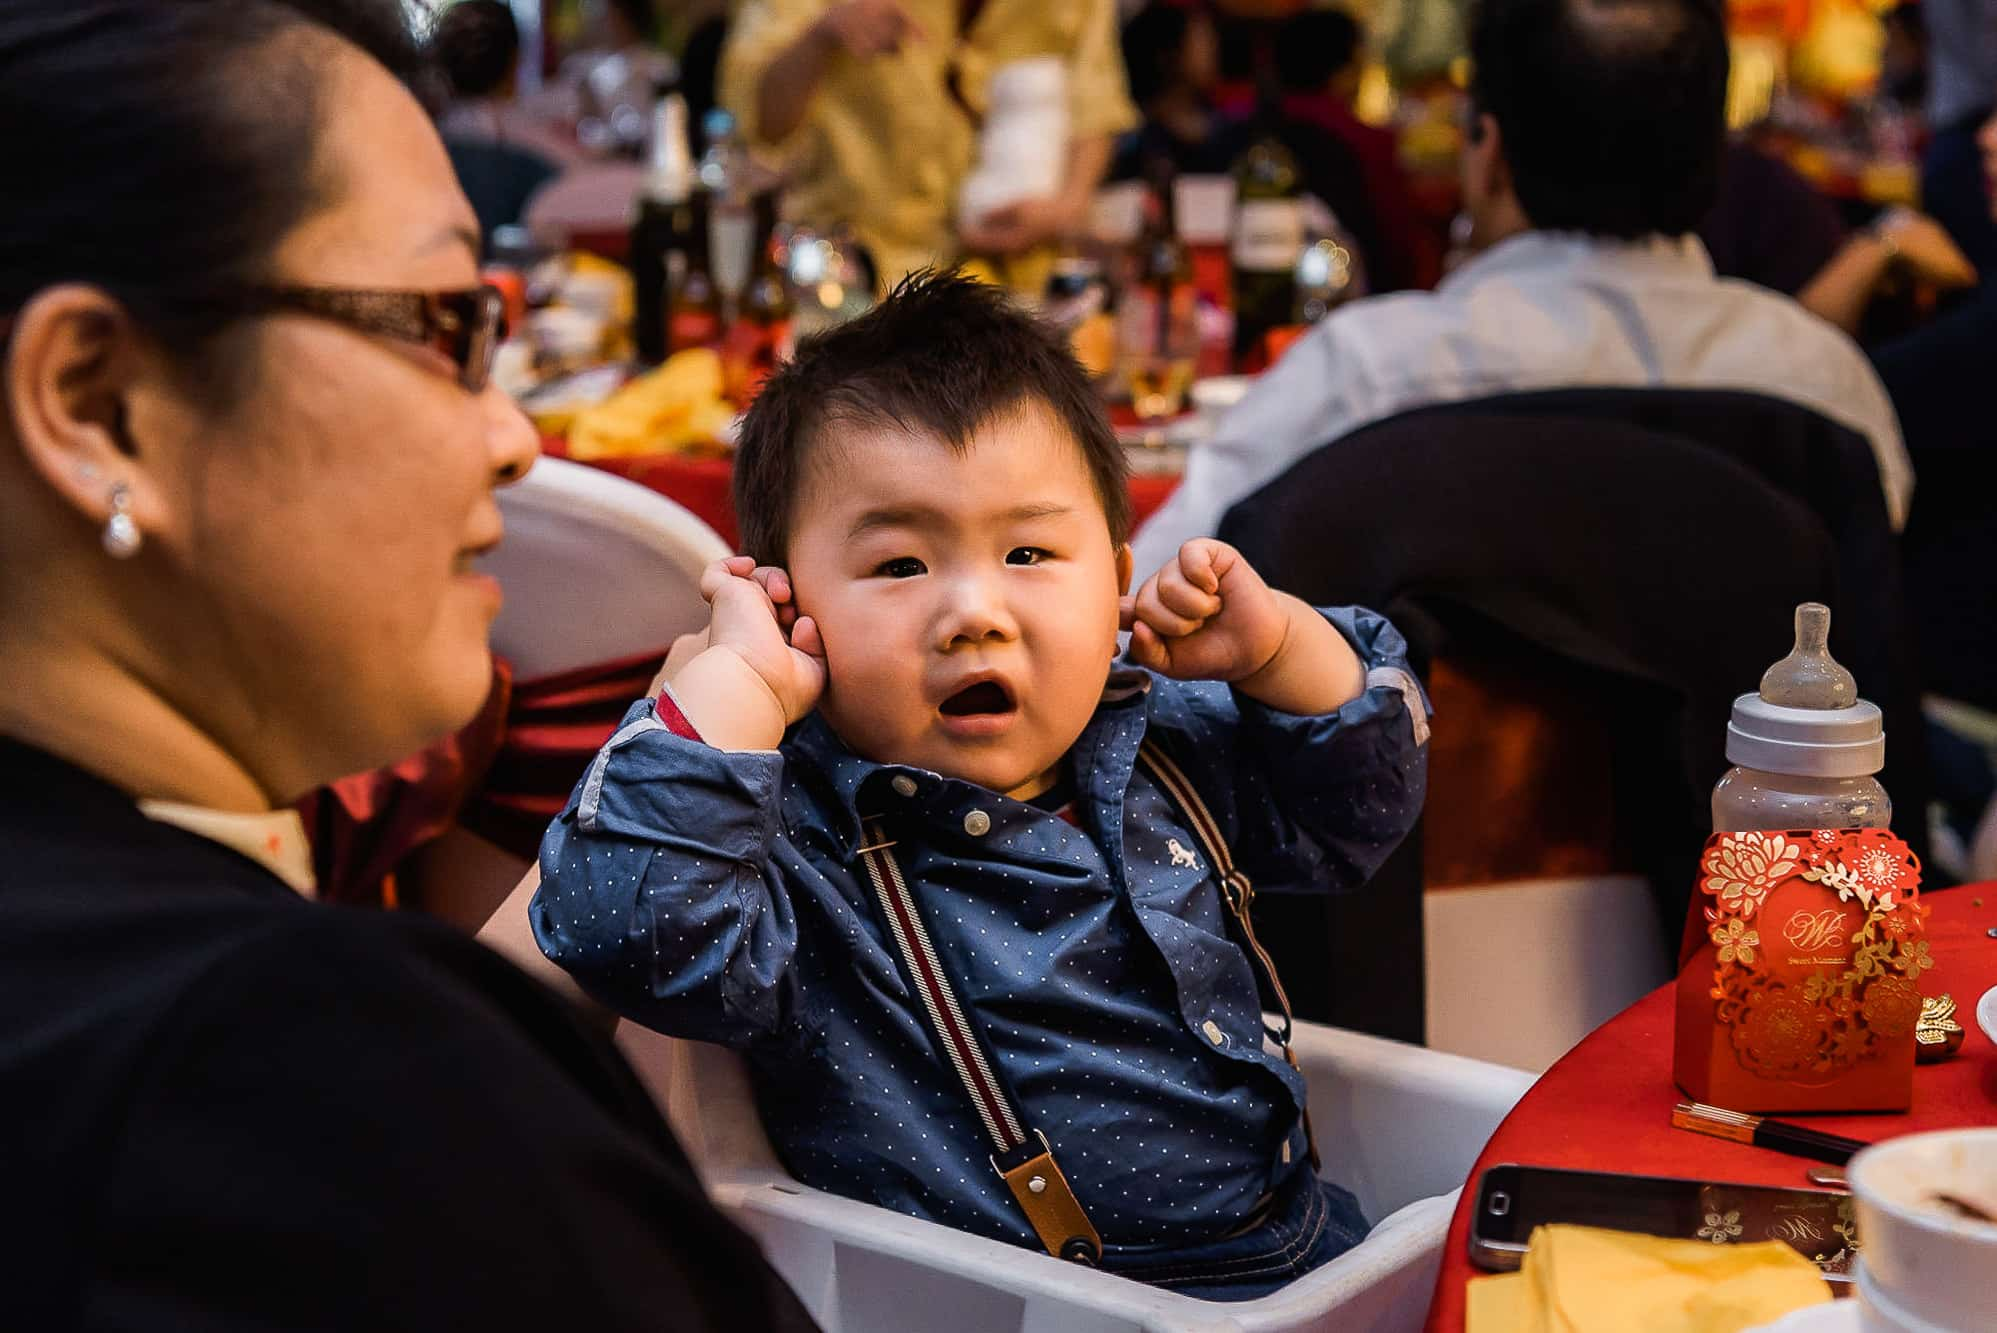 Child with hands in ears